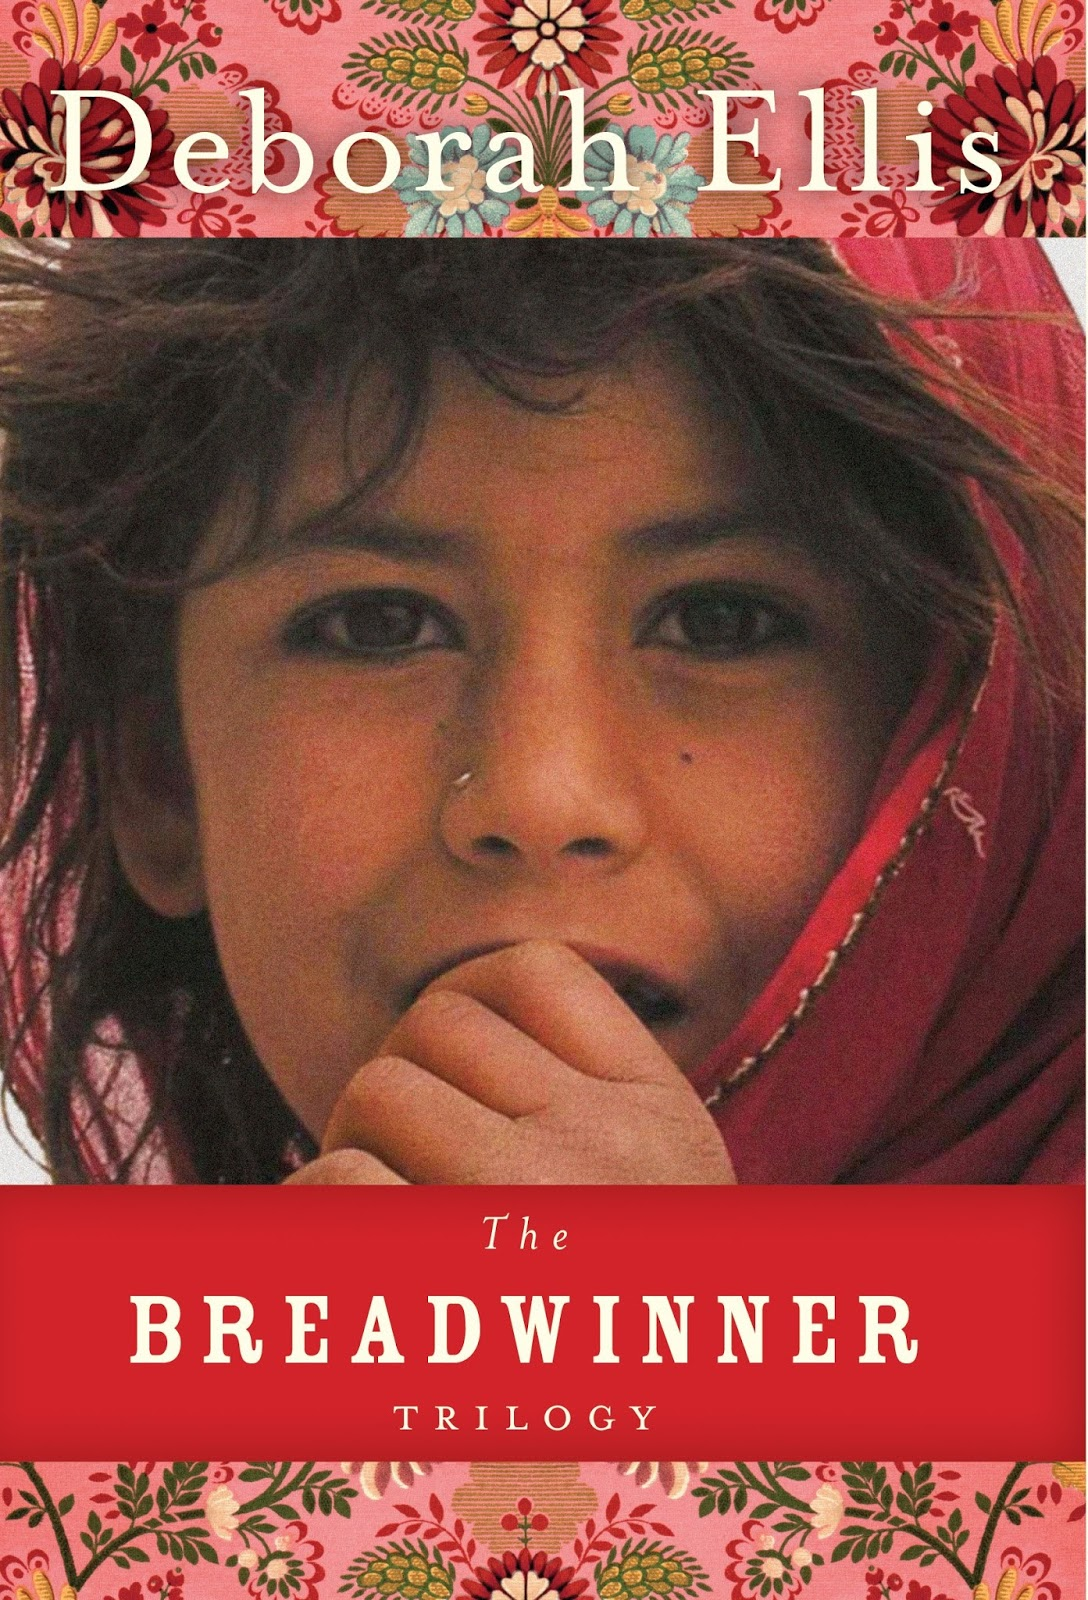 the breadwinner understanding Understanding another culture can start with understanding  we read a book or watch a film like the breadwinner, but it doesn't stop there.